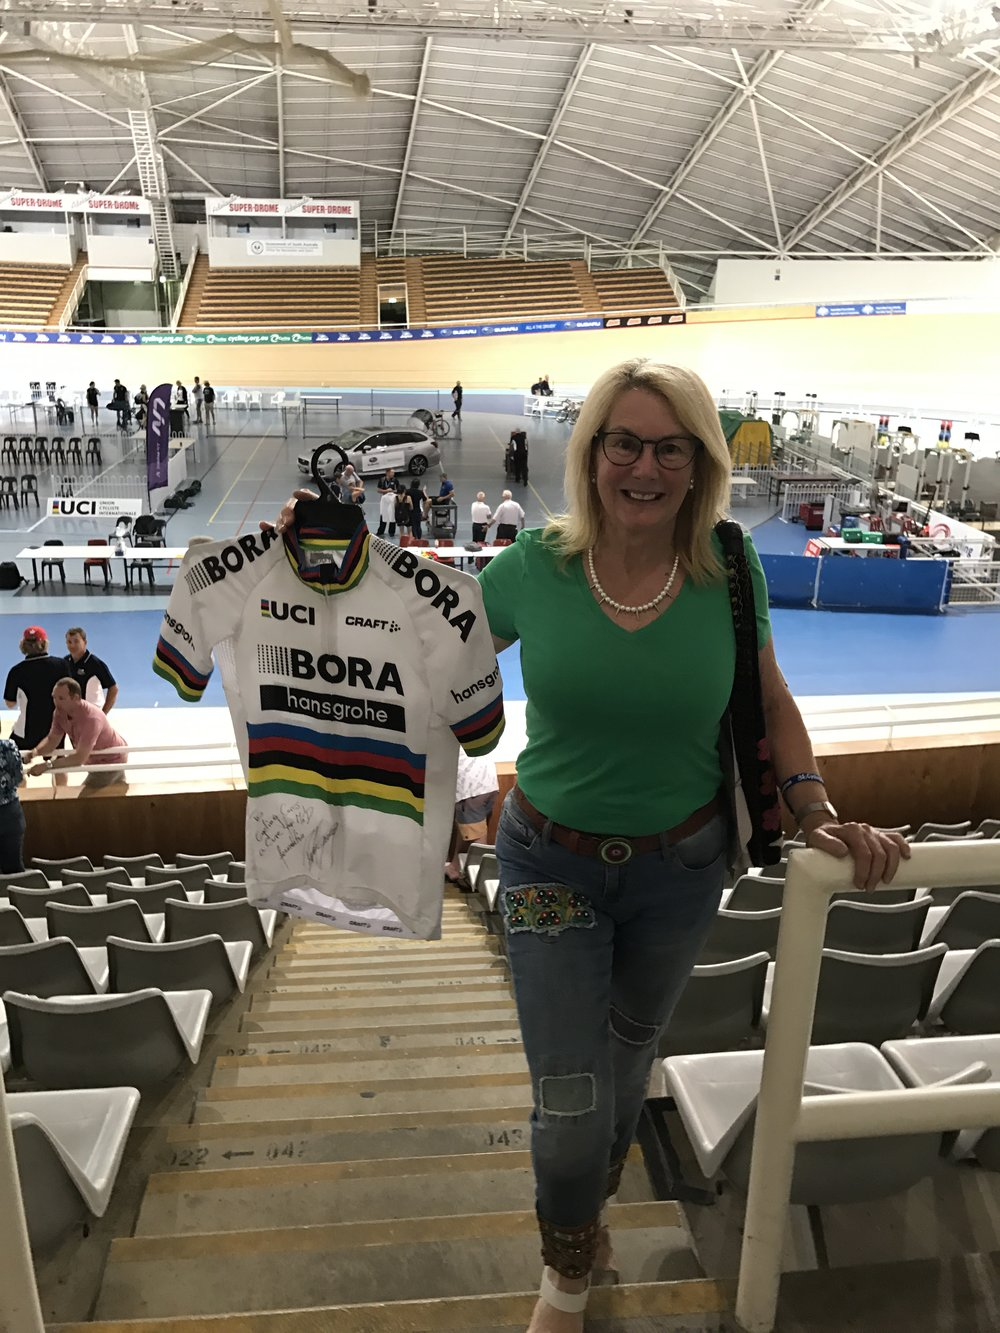 Tour Down Under 2017 - BiciSport member Dianne Townsend went to the track night at the Adelaide Velodrome for Cycling Cares in support of former Cycling Australia coach Gary West (a cure for Motor Neurone Disease).  Dianne made the winning bid for the Peter Sagan jersey (personally signed of course)